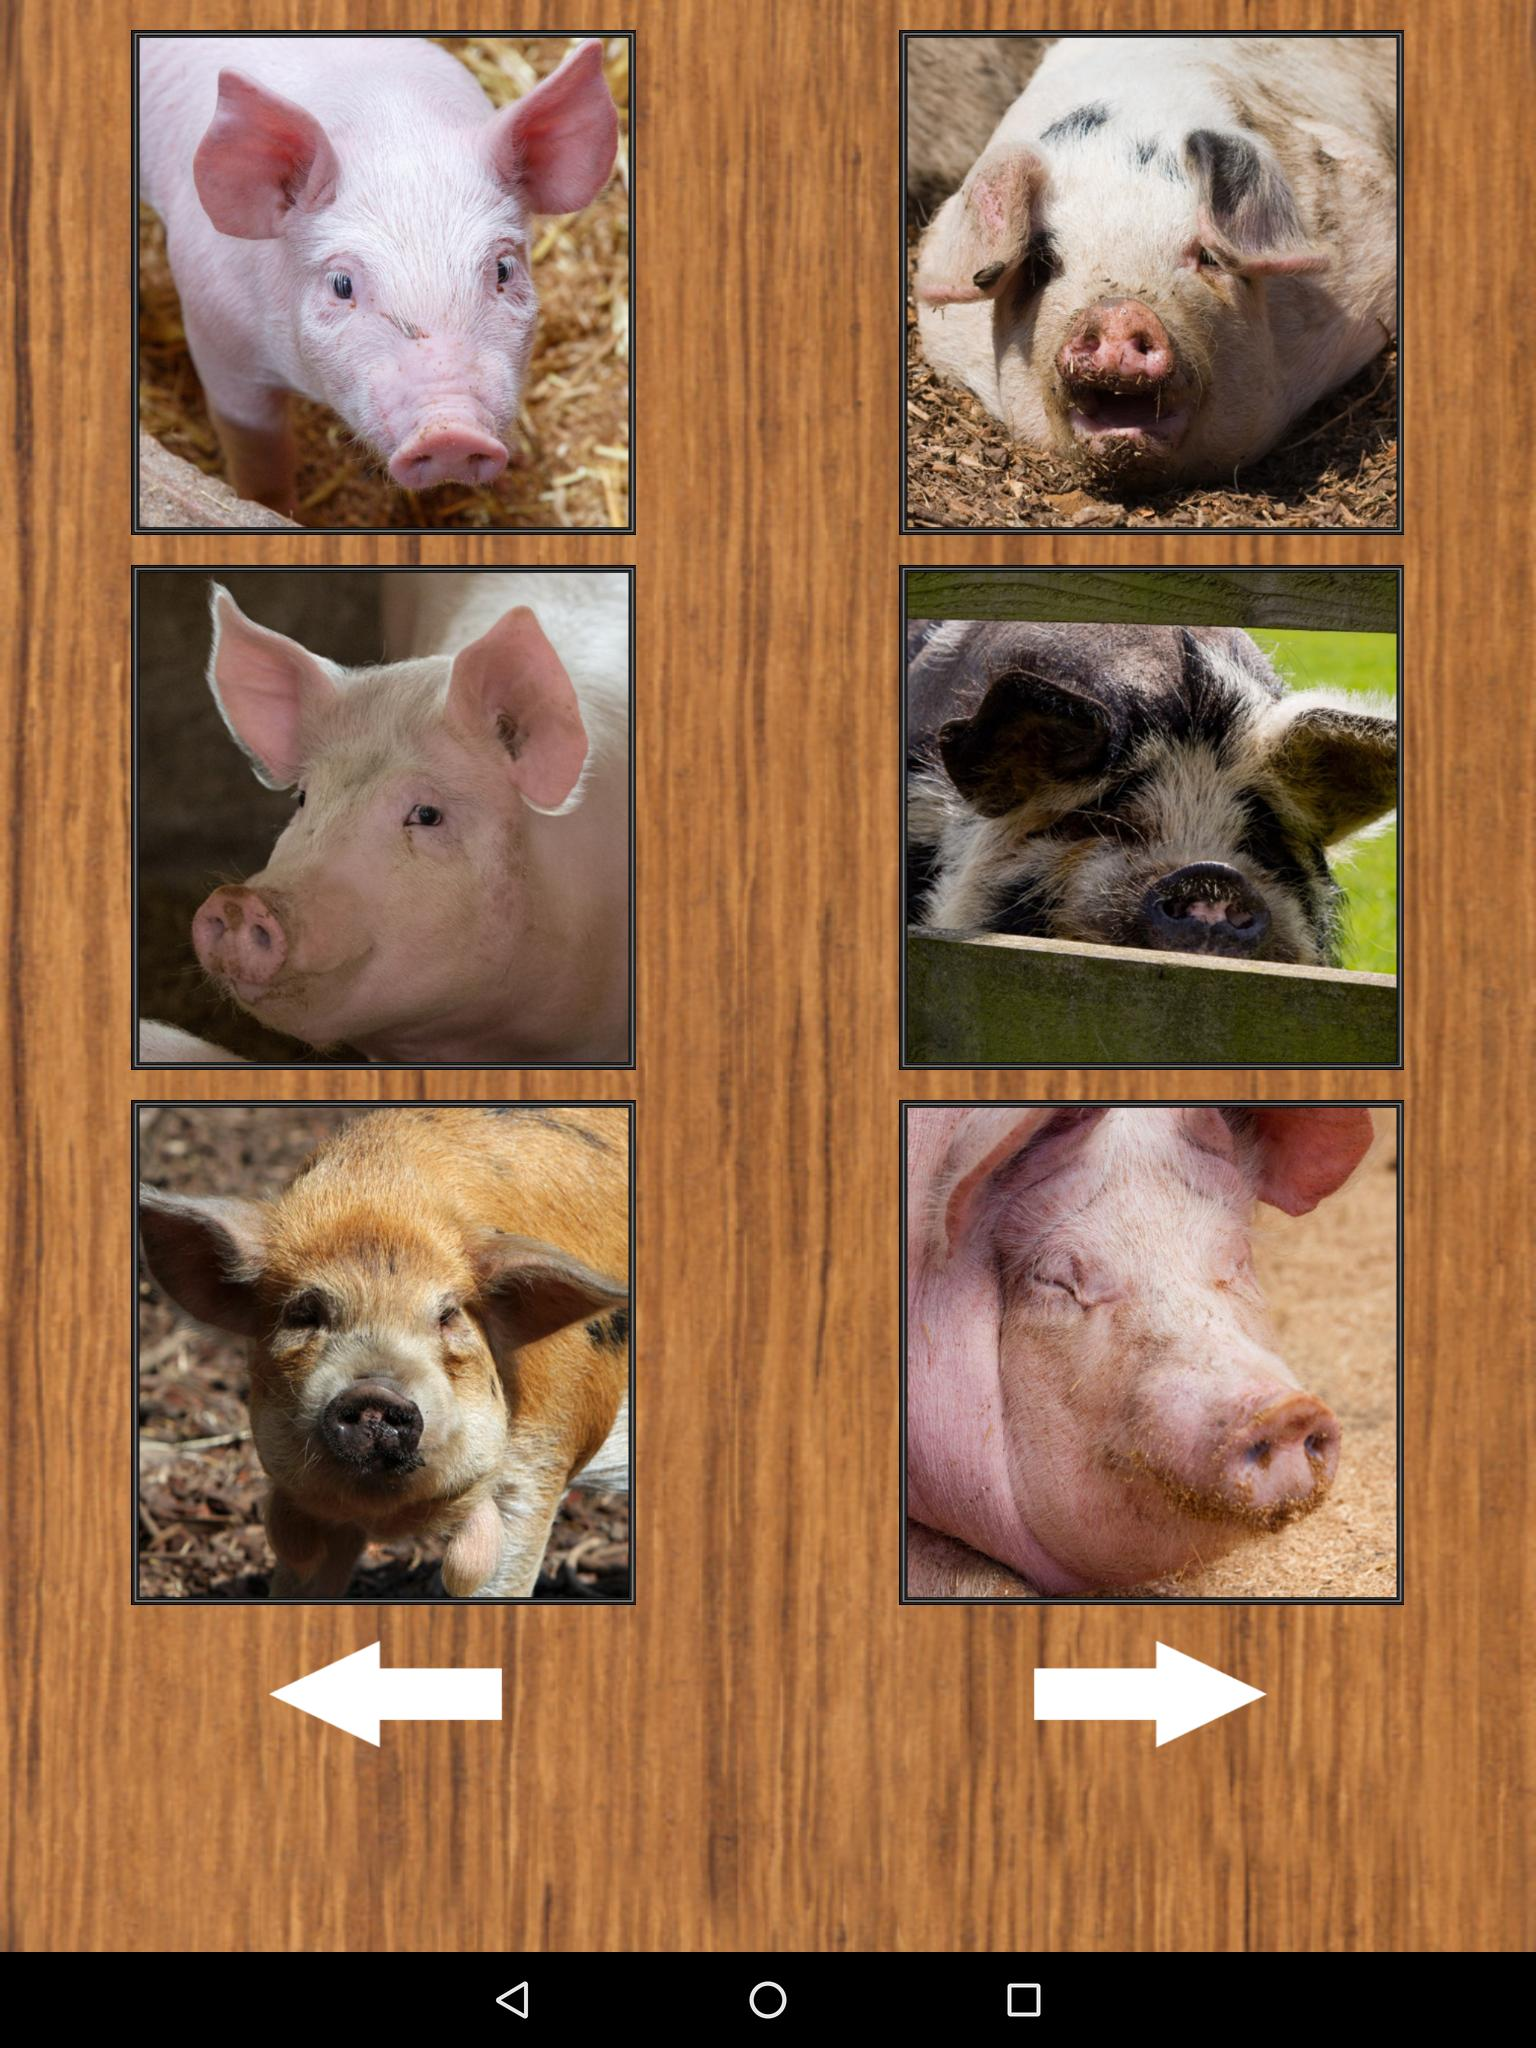 Cute Funny Pig Piglet Sounds for Android - APK Download